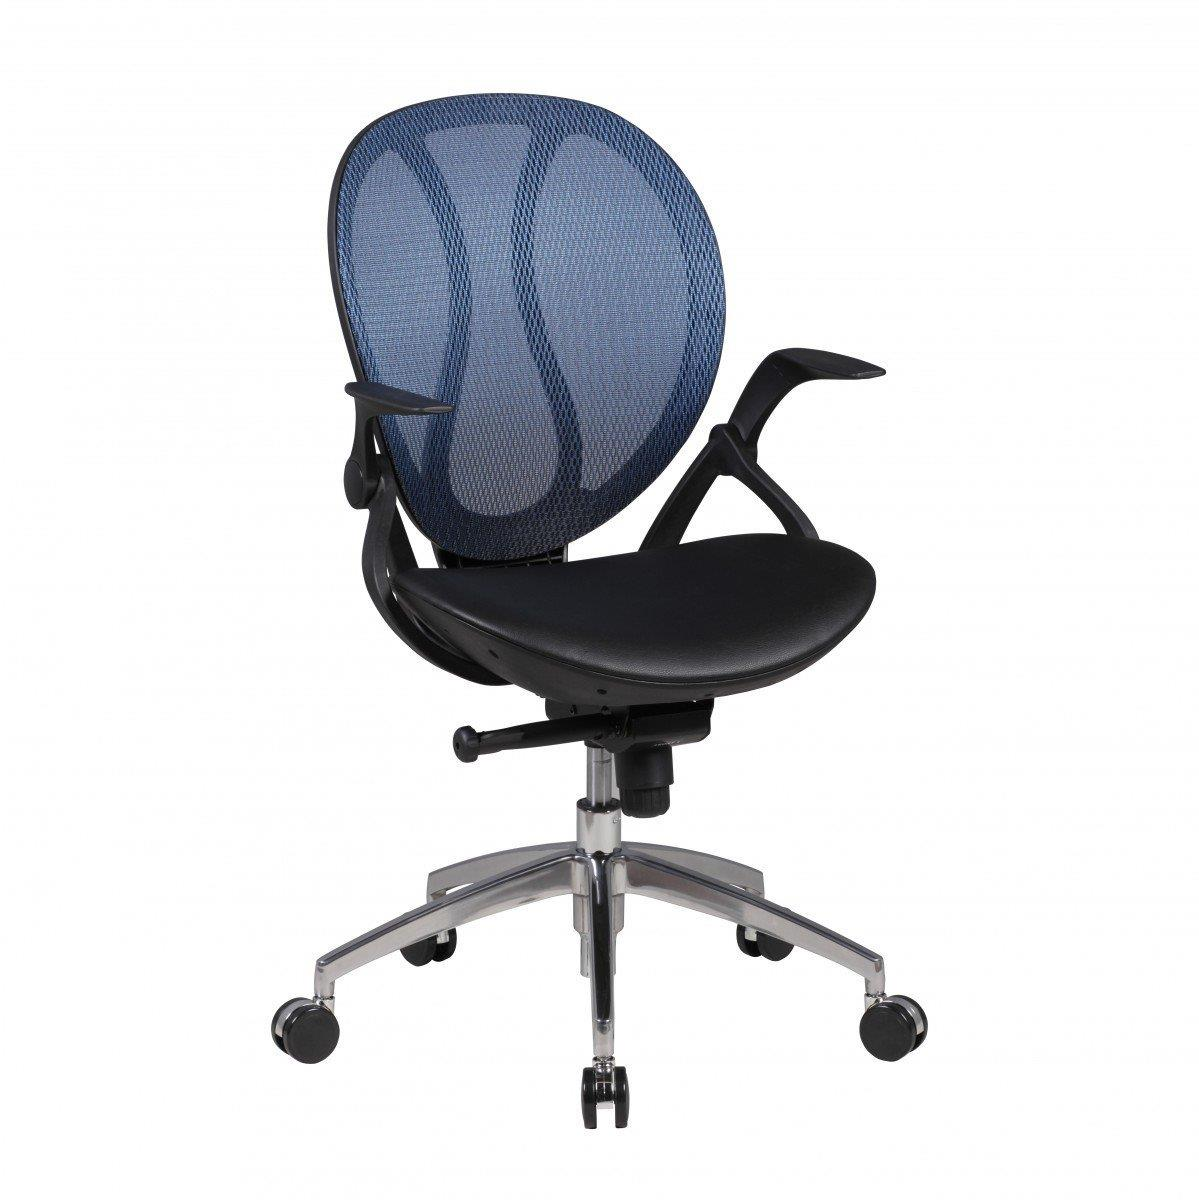 Silla Ergonómica TELMA, Brazos Regulables en Malla Transpirable color Azul